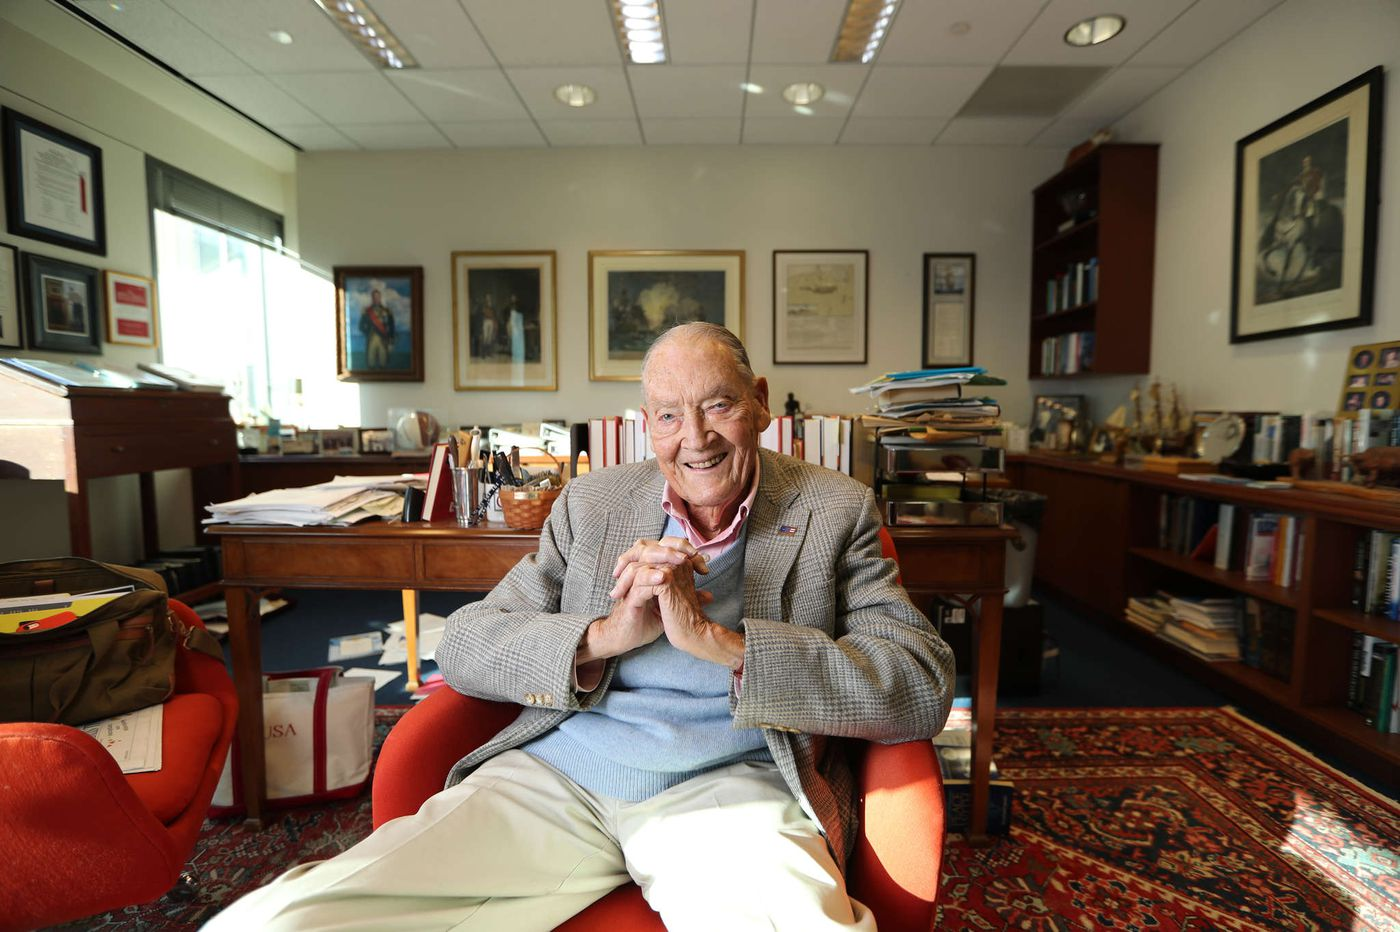 Bogle's legacy: Booming index funds with perhaps too much reach